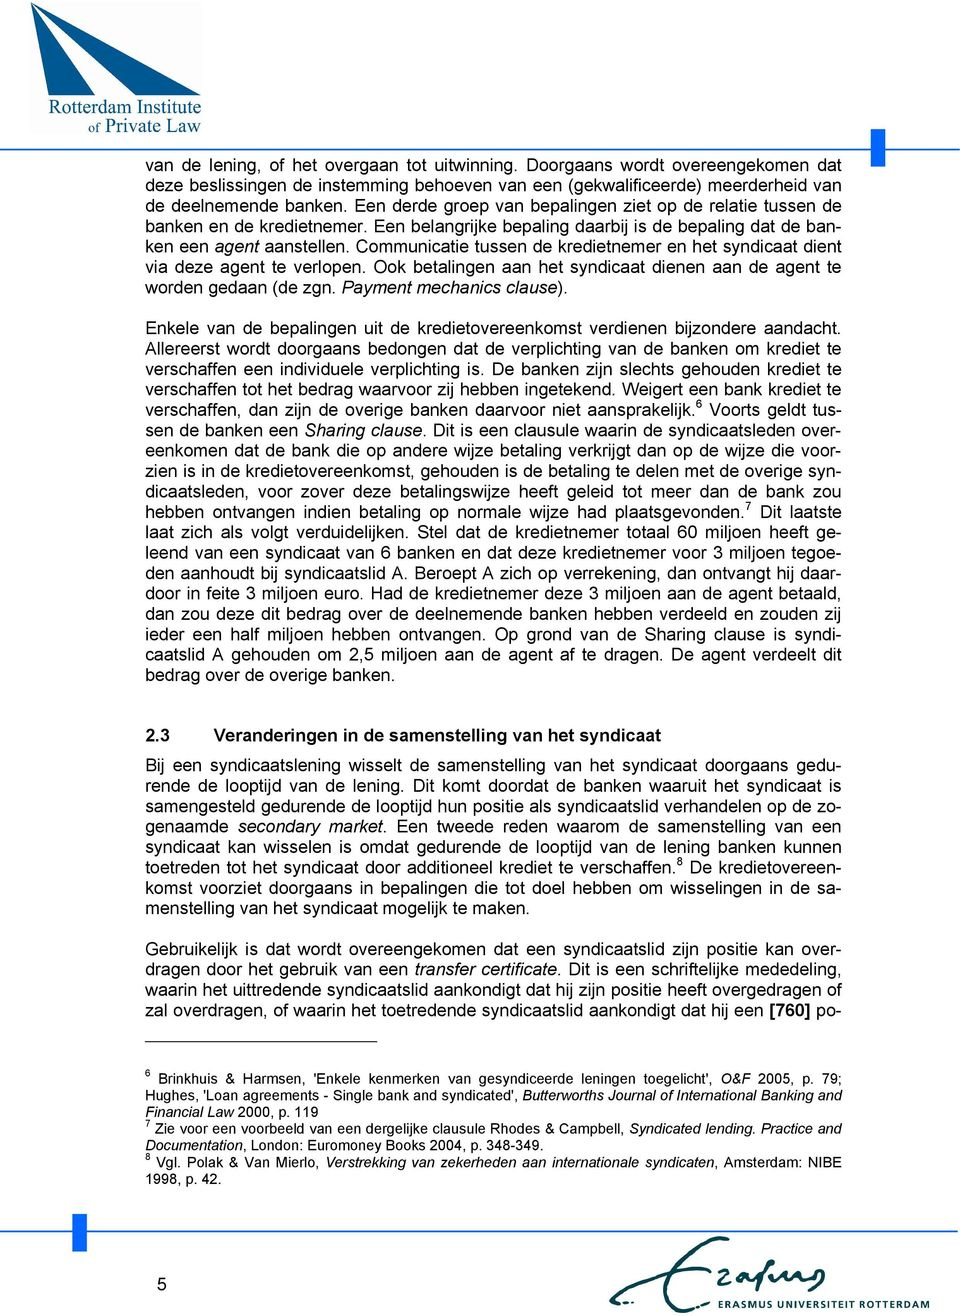 butterworths journal of international banking and financial law pdf